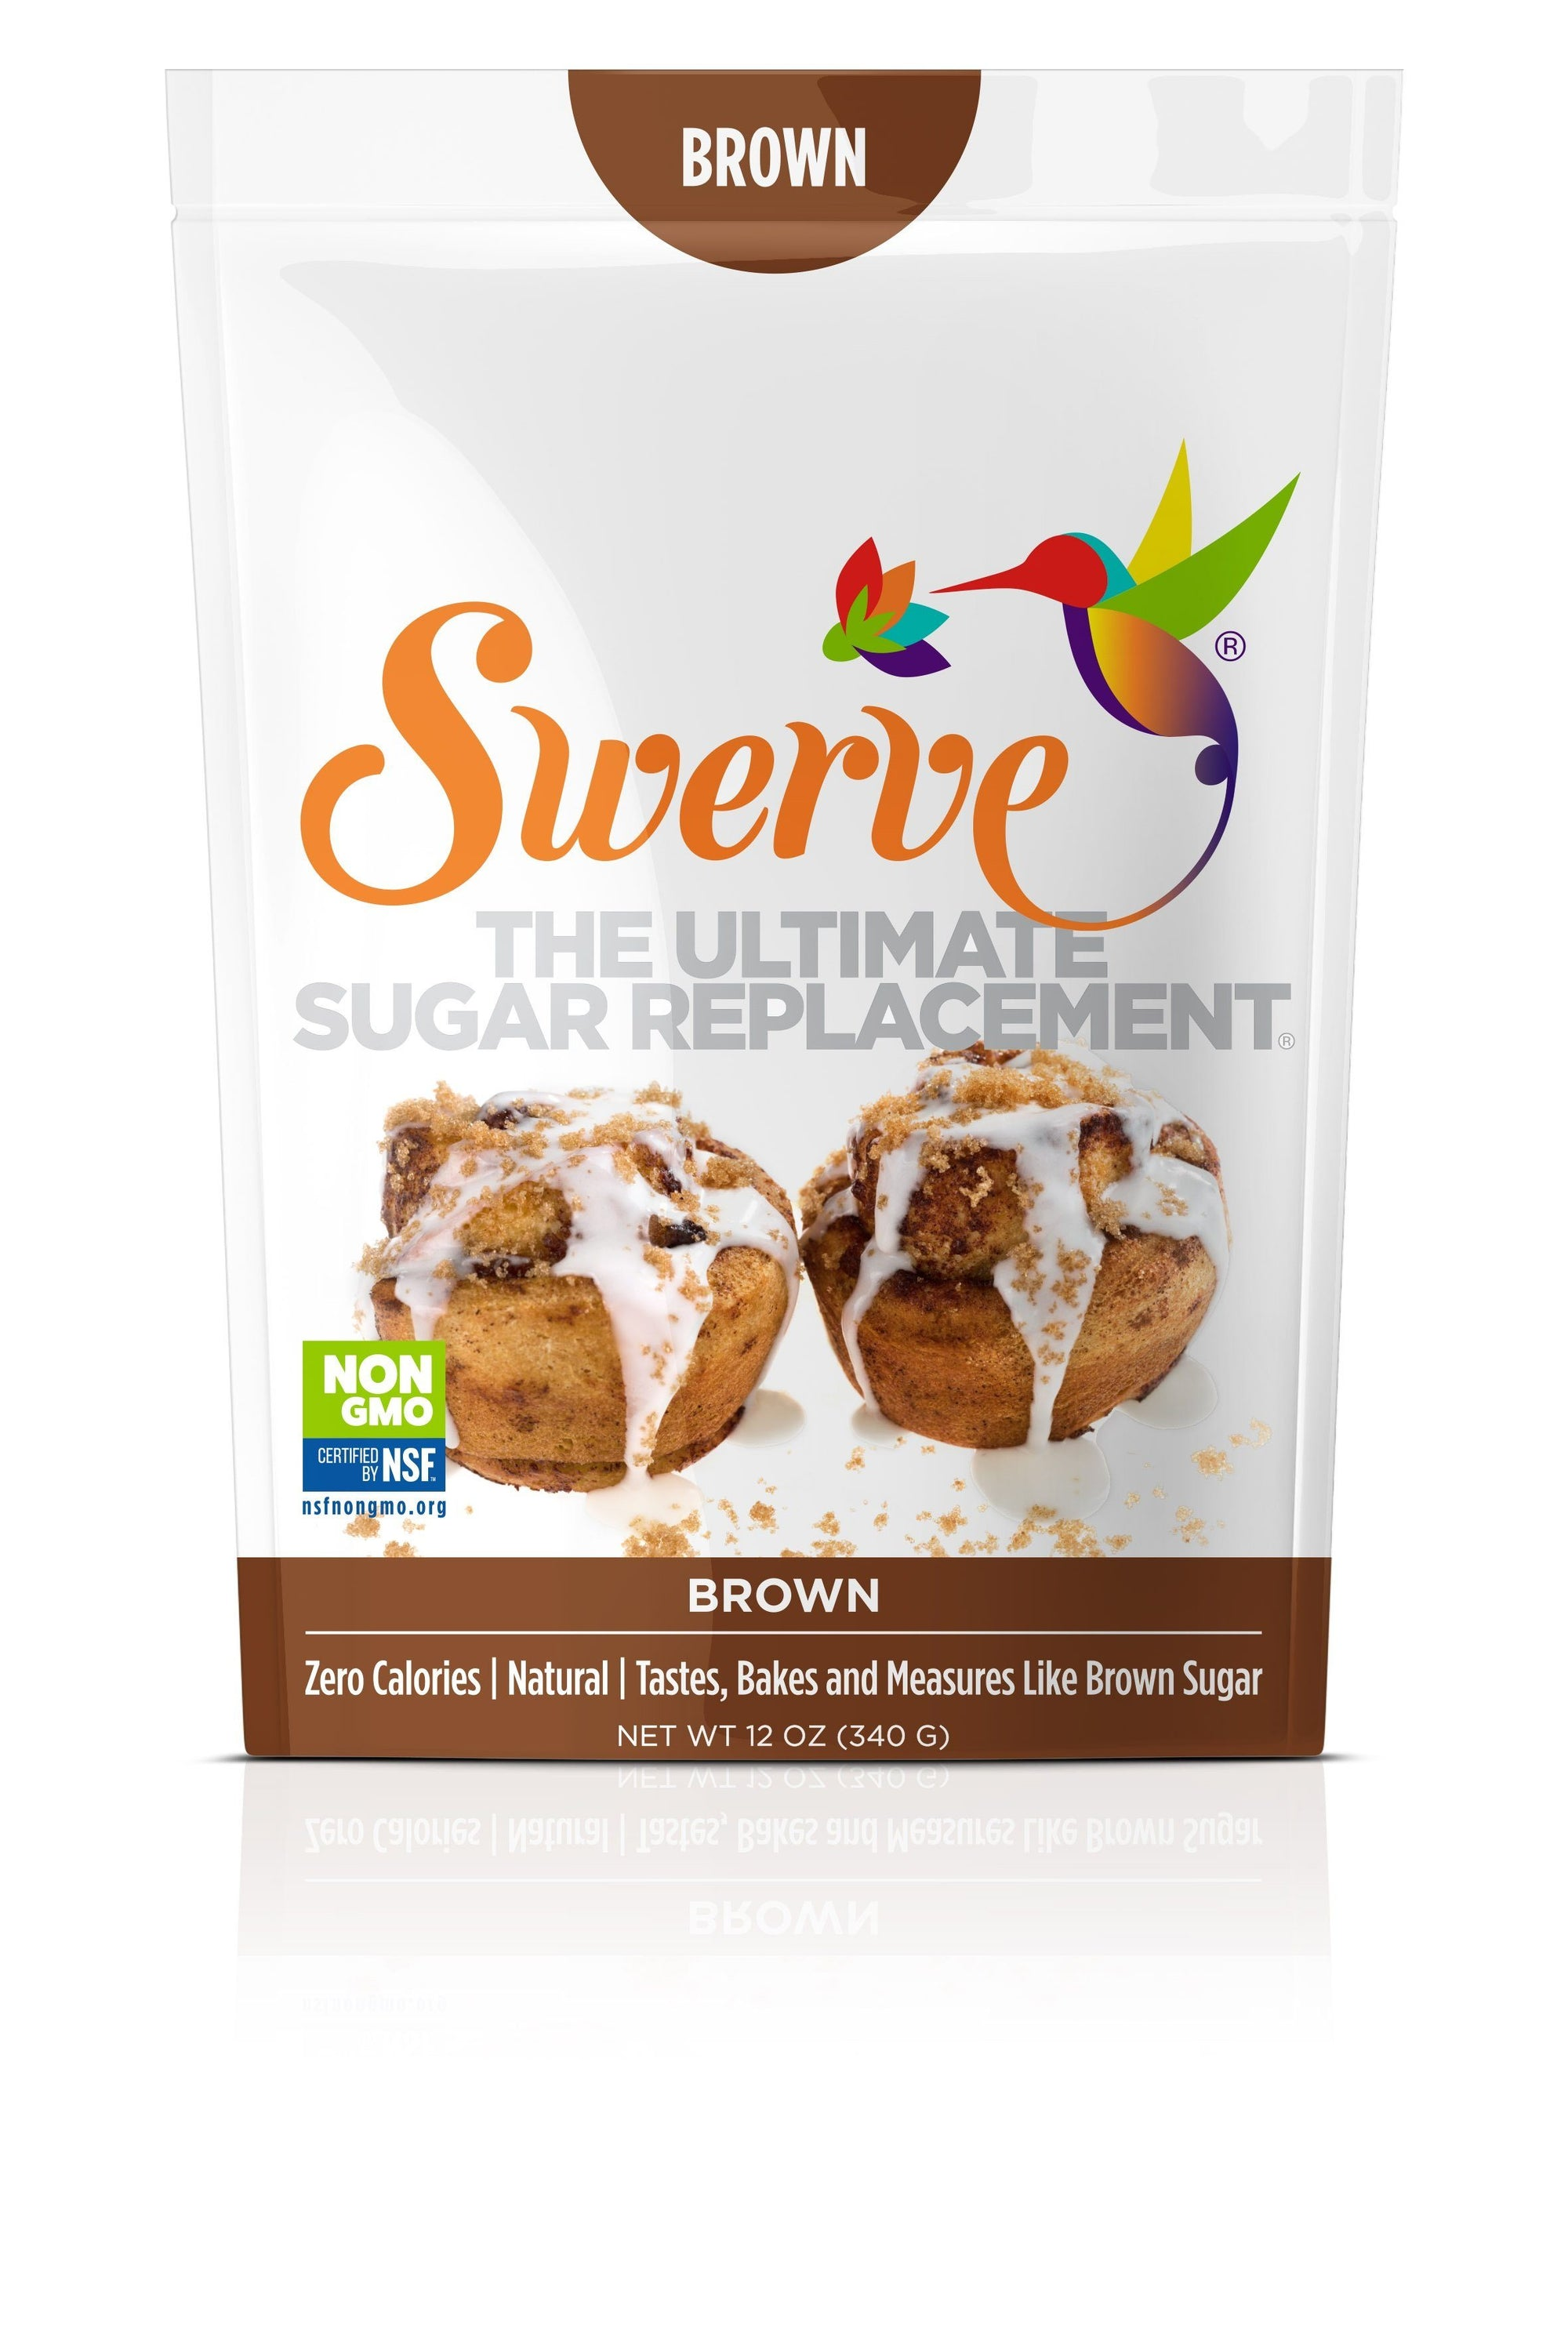 Food & Drink - Swerve - Brown Sugar Replacement